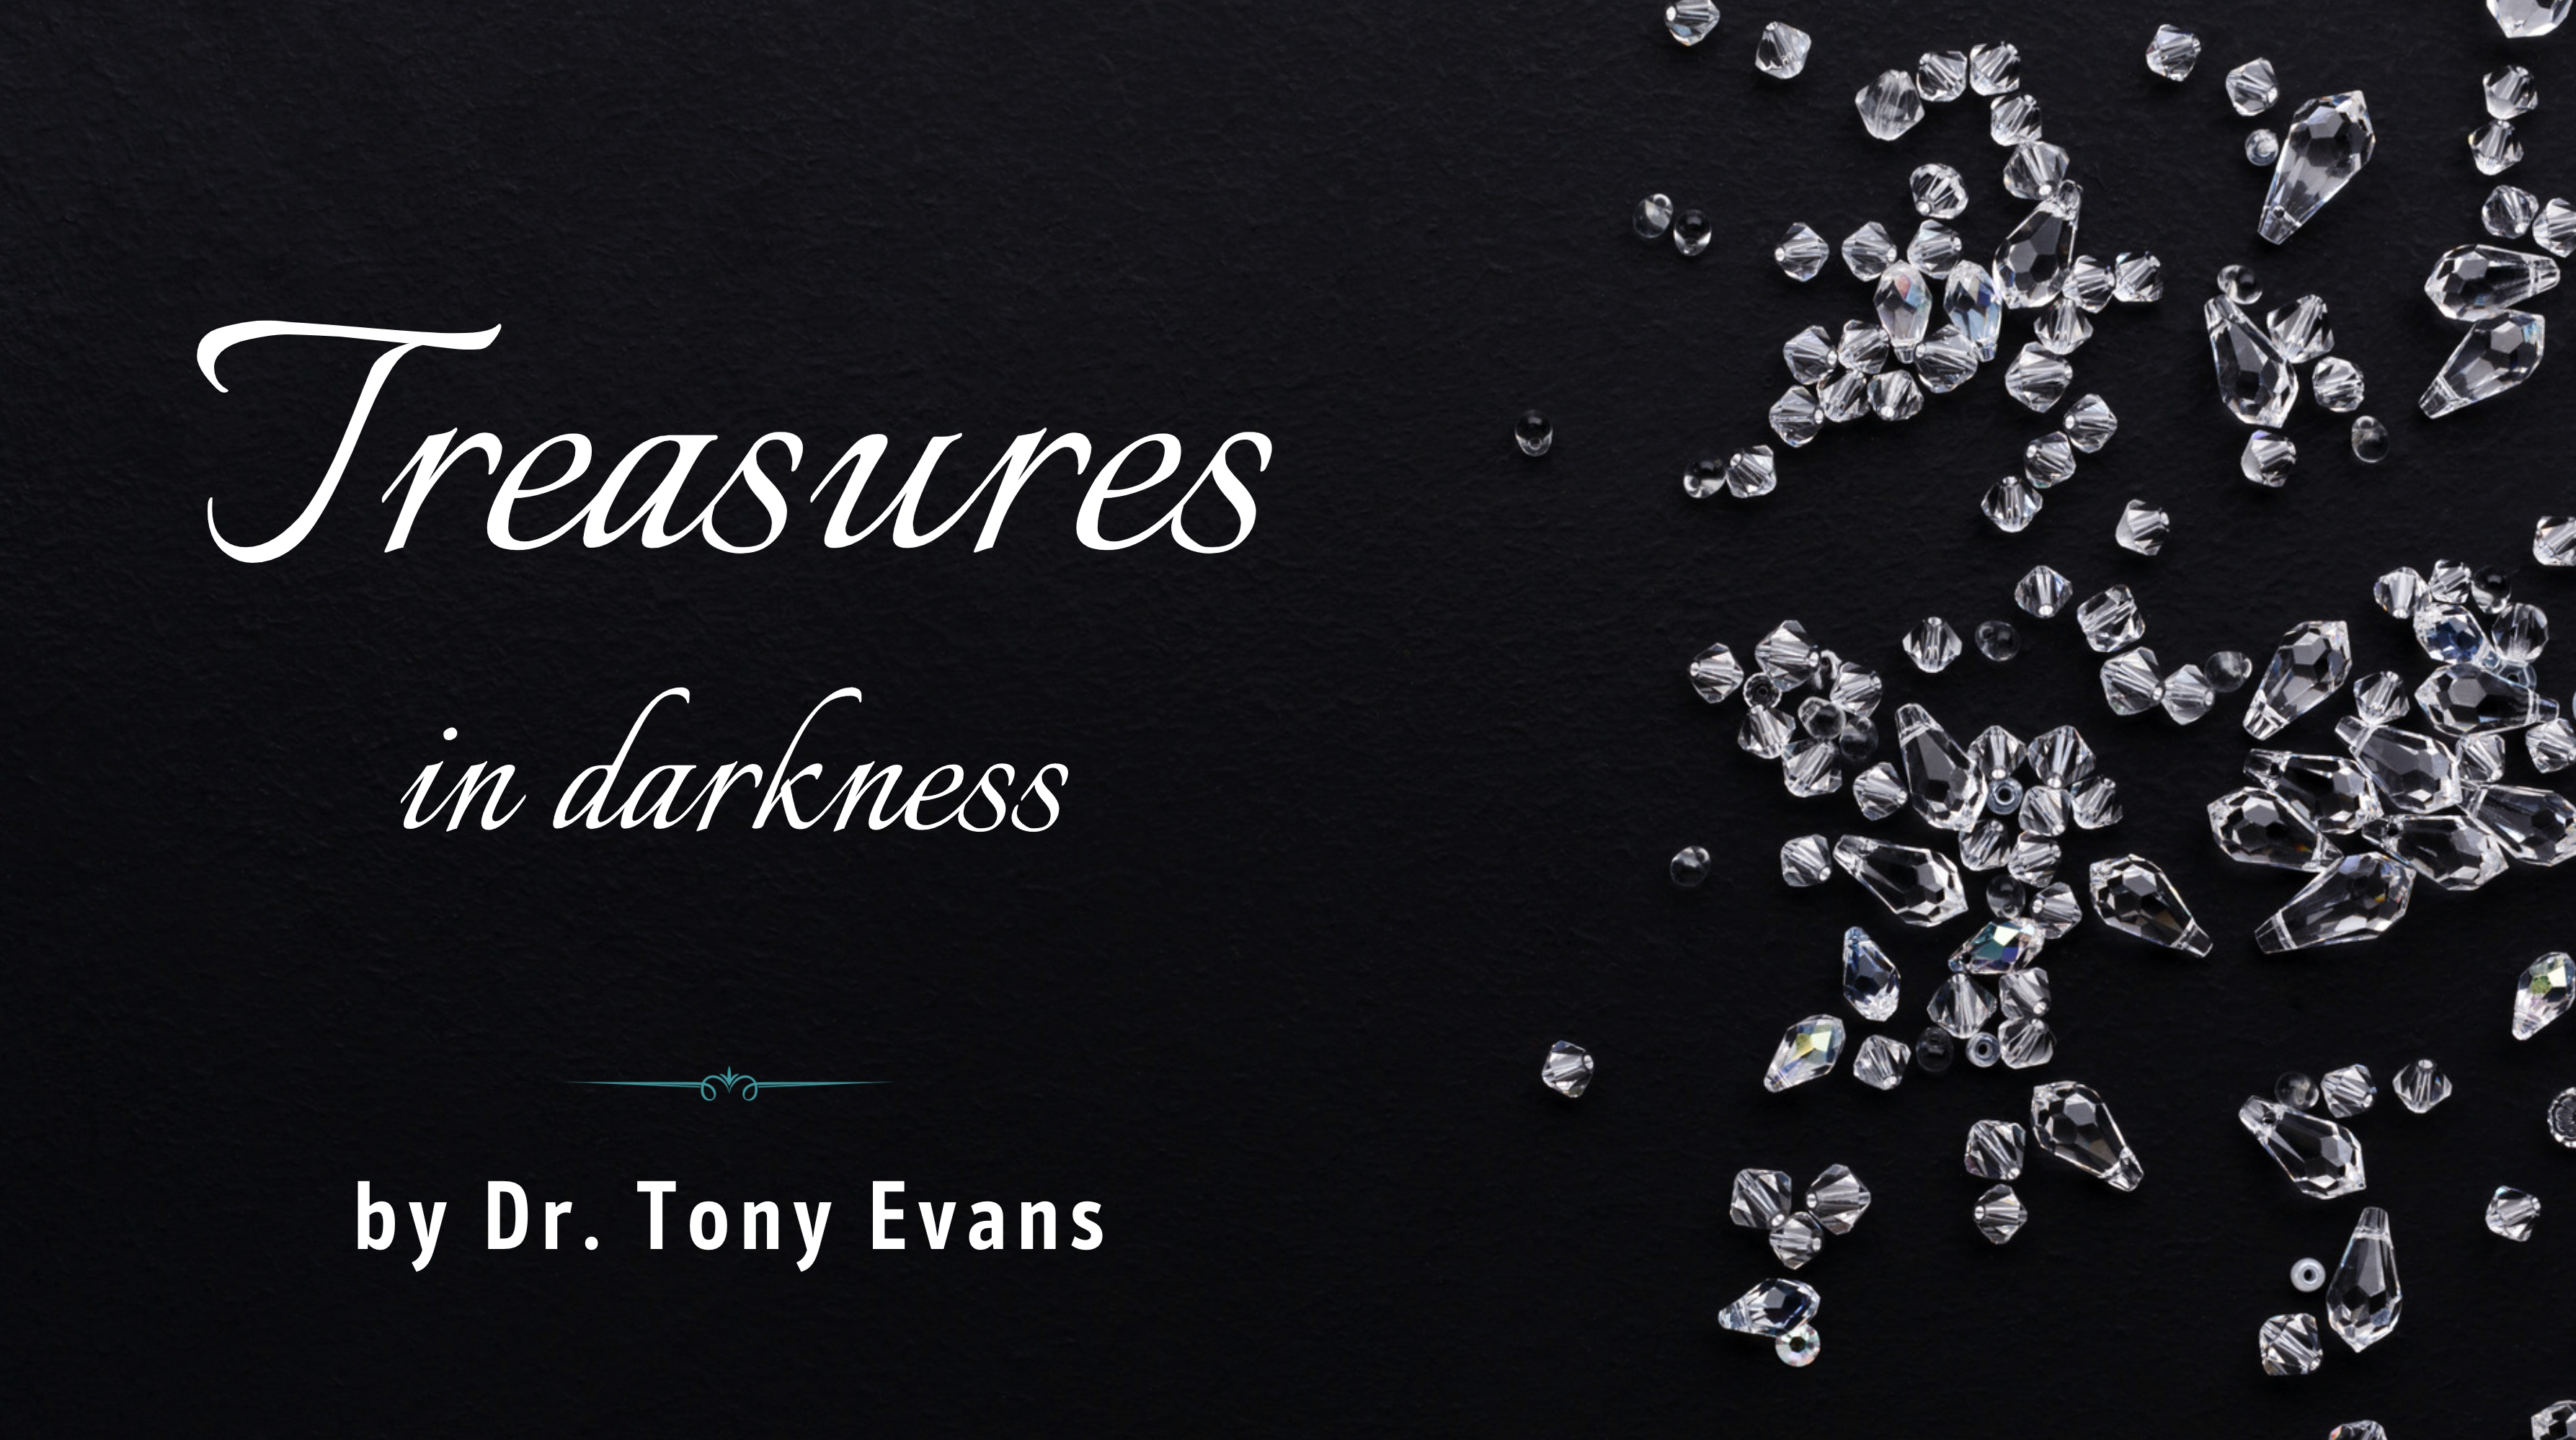 Treasures in Darkness by Dr. Tony Evans for the Jesus Calling blog